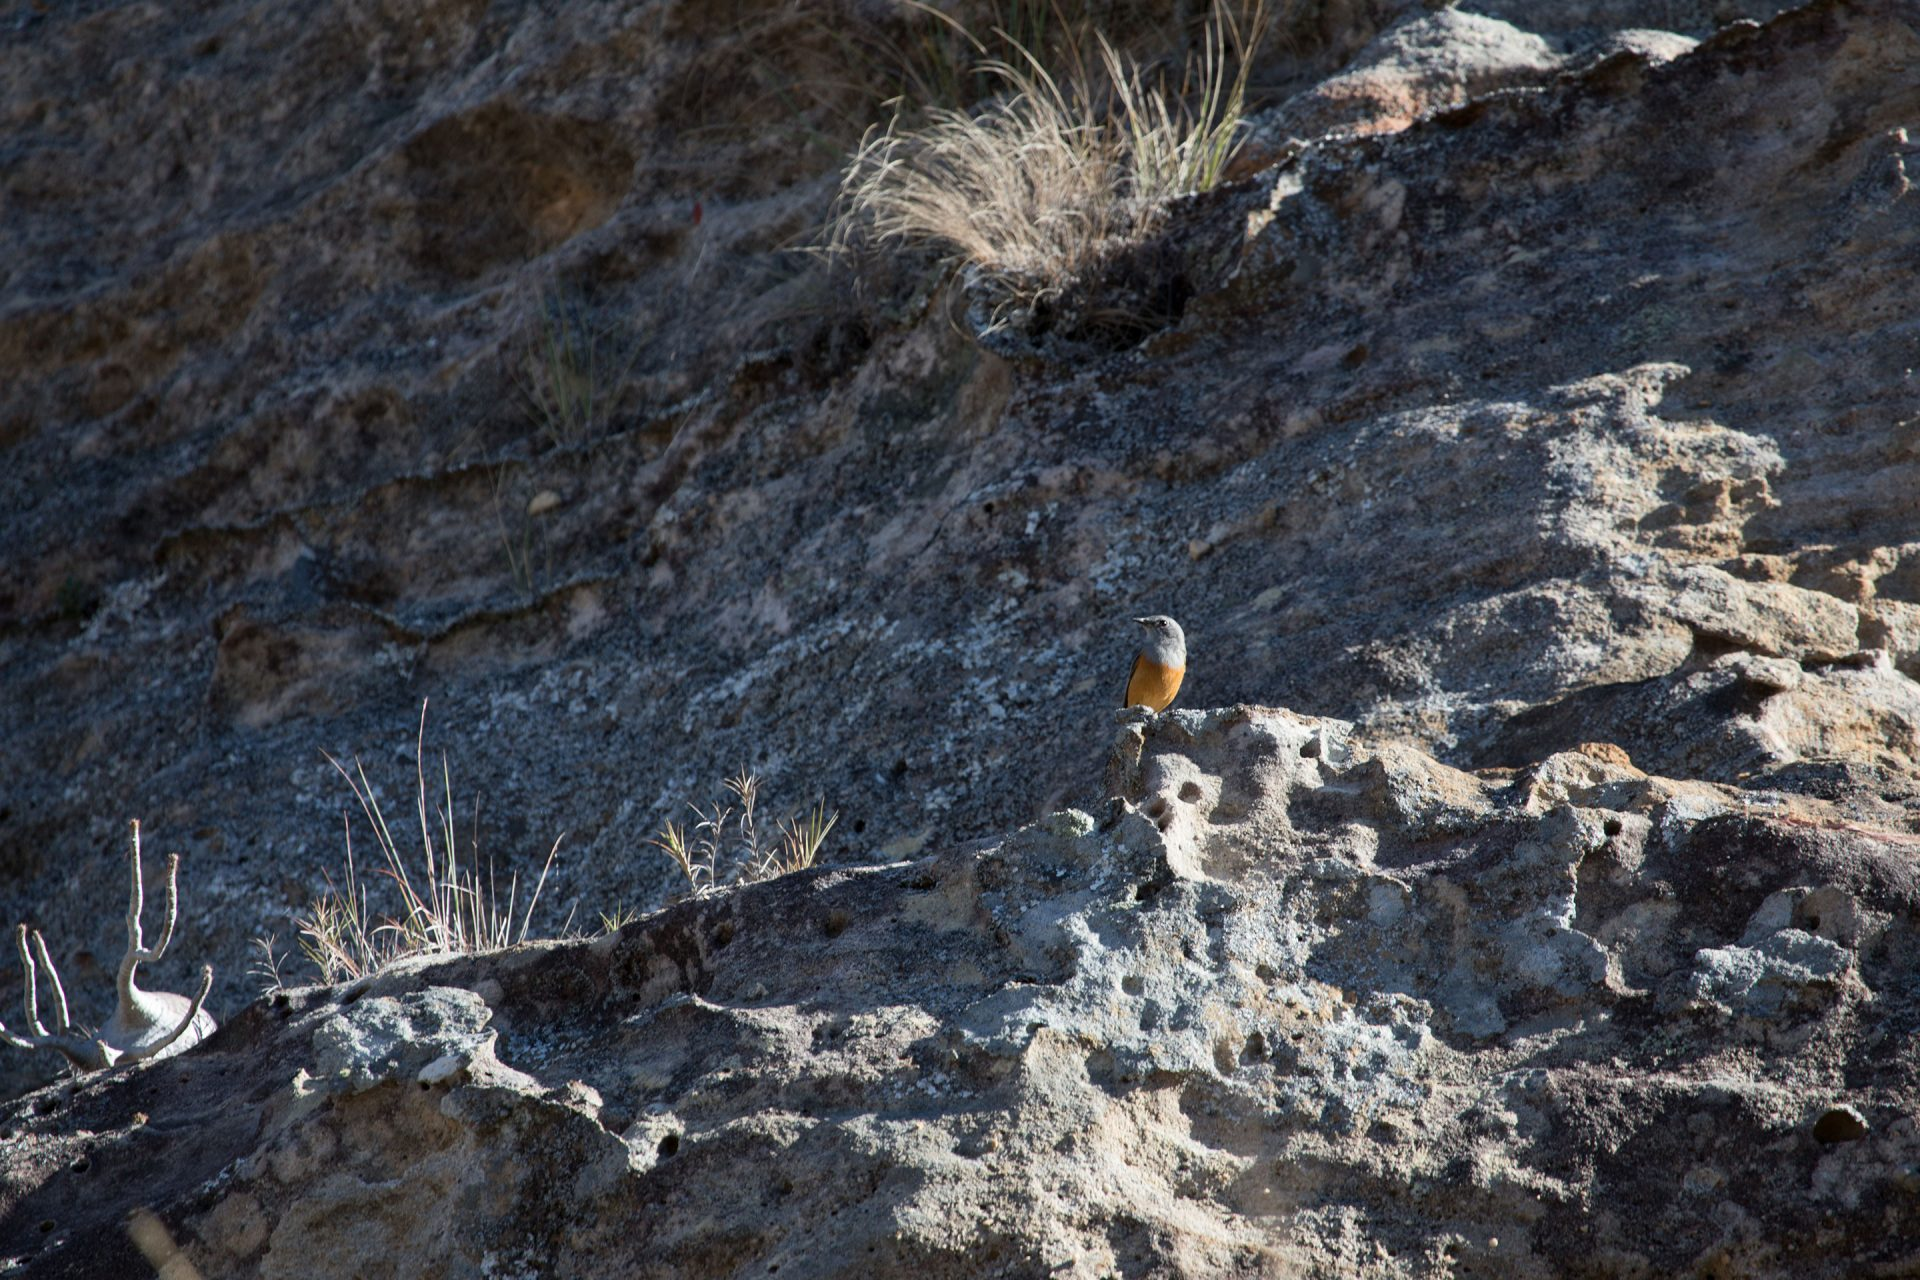 Madagascar Rock Thrush